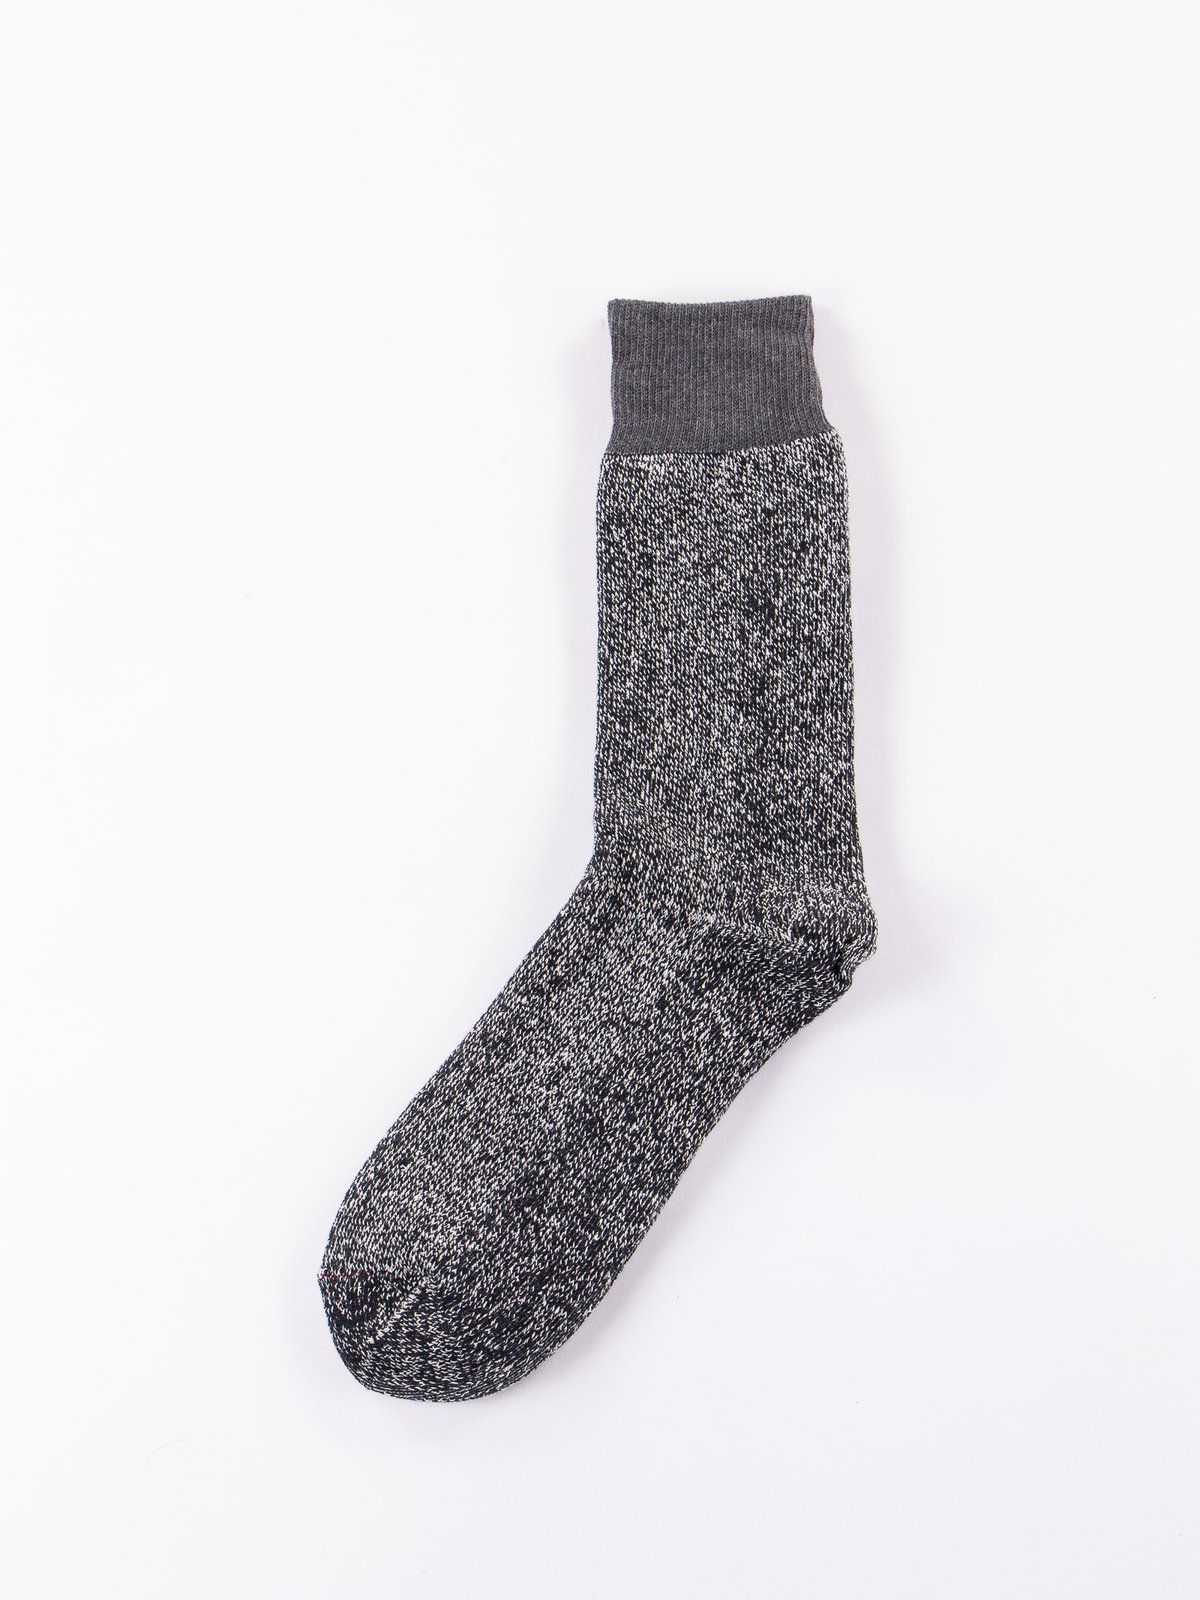 Dark Grey/Black Double Face Socks - Image 1